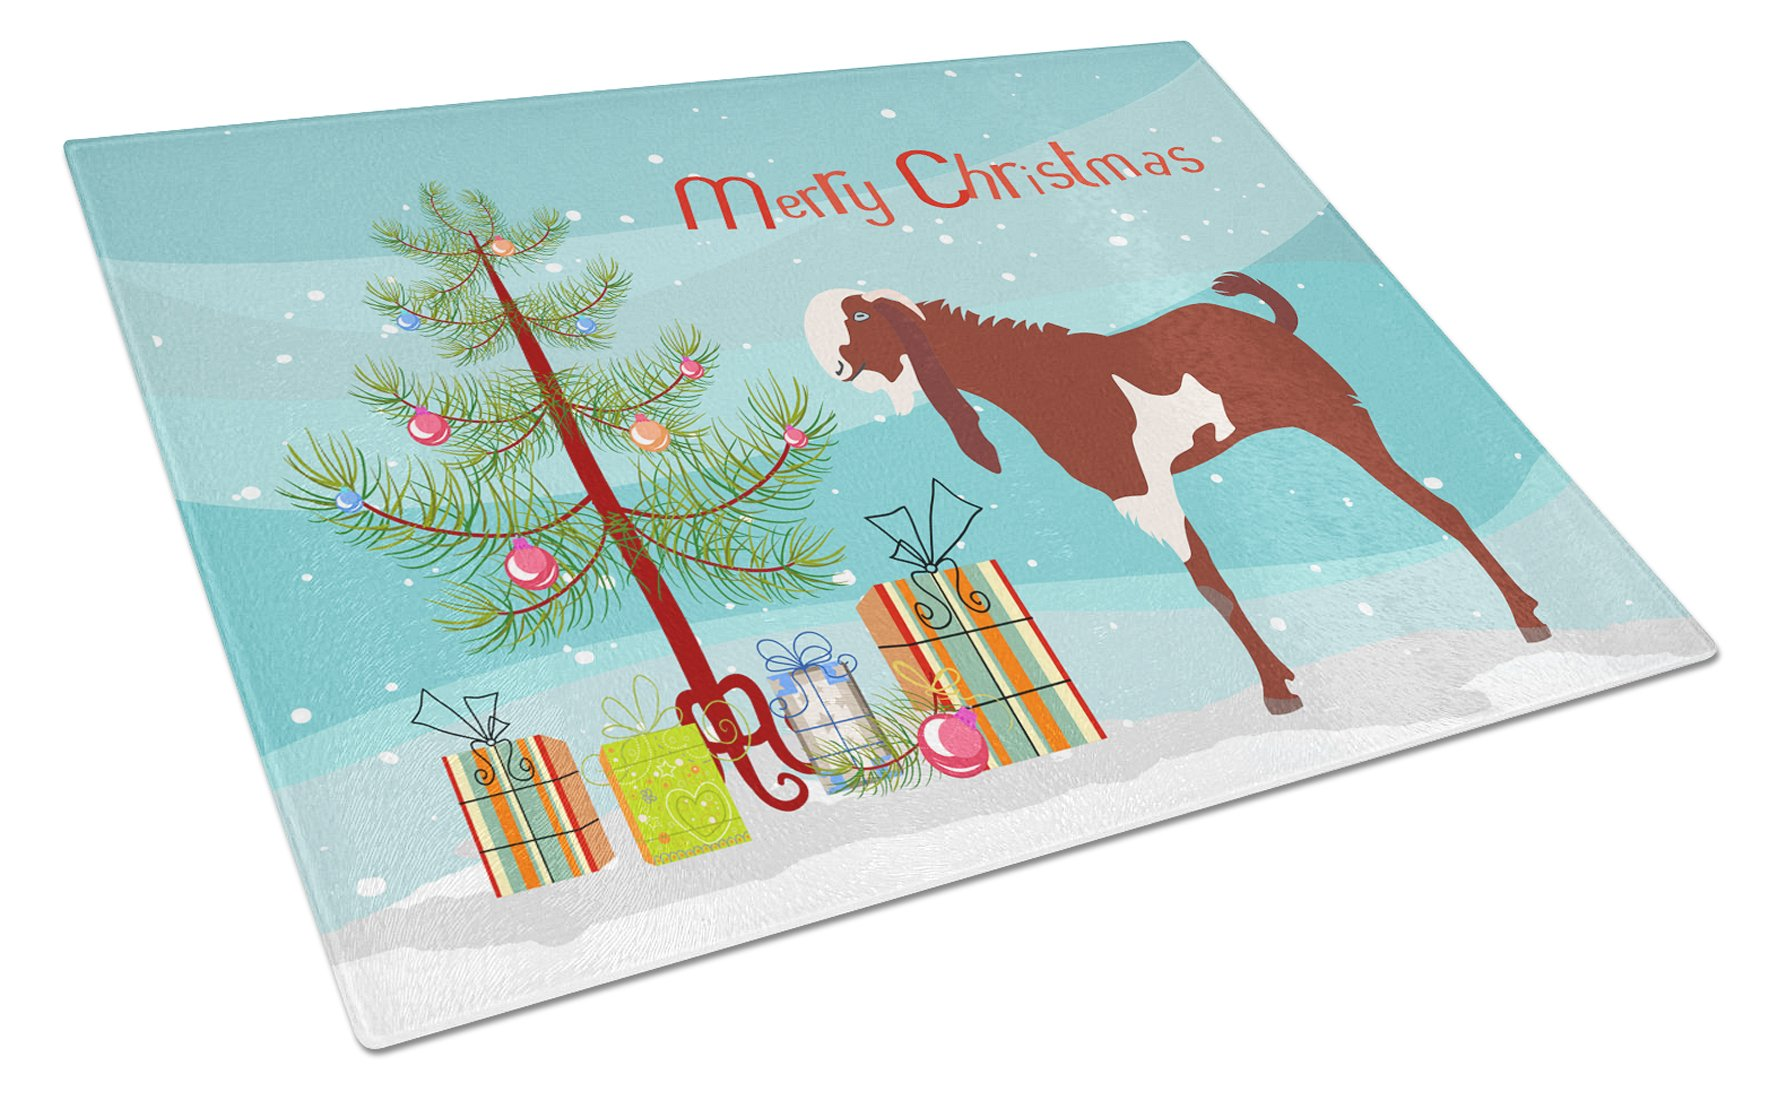 Jamnapari Goat Christmas Glass Cutting Board Large BB9257LCB by Caroline's Treasures